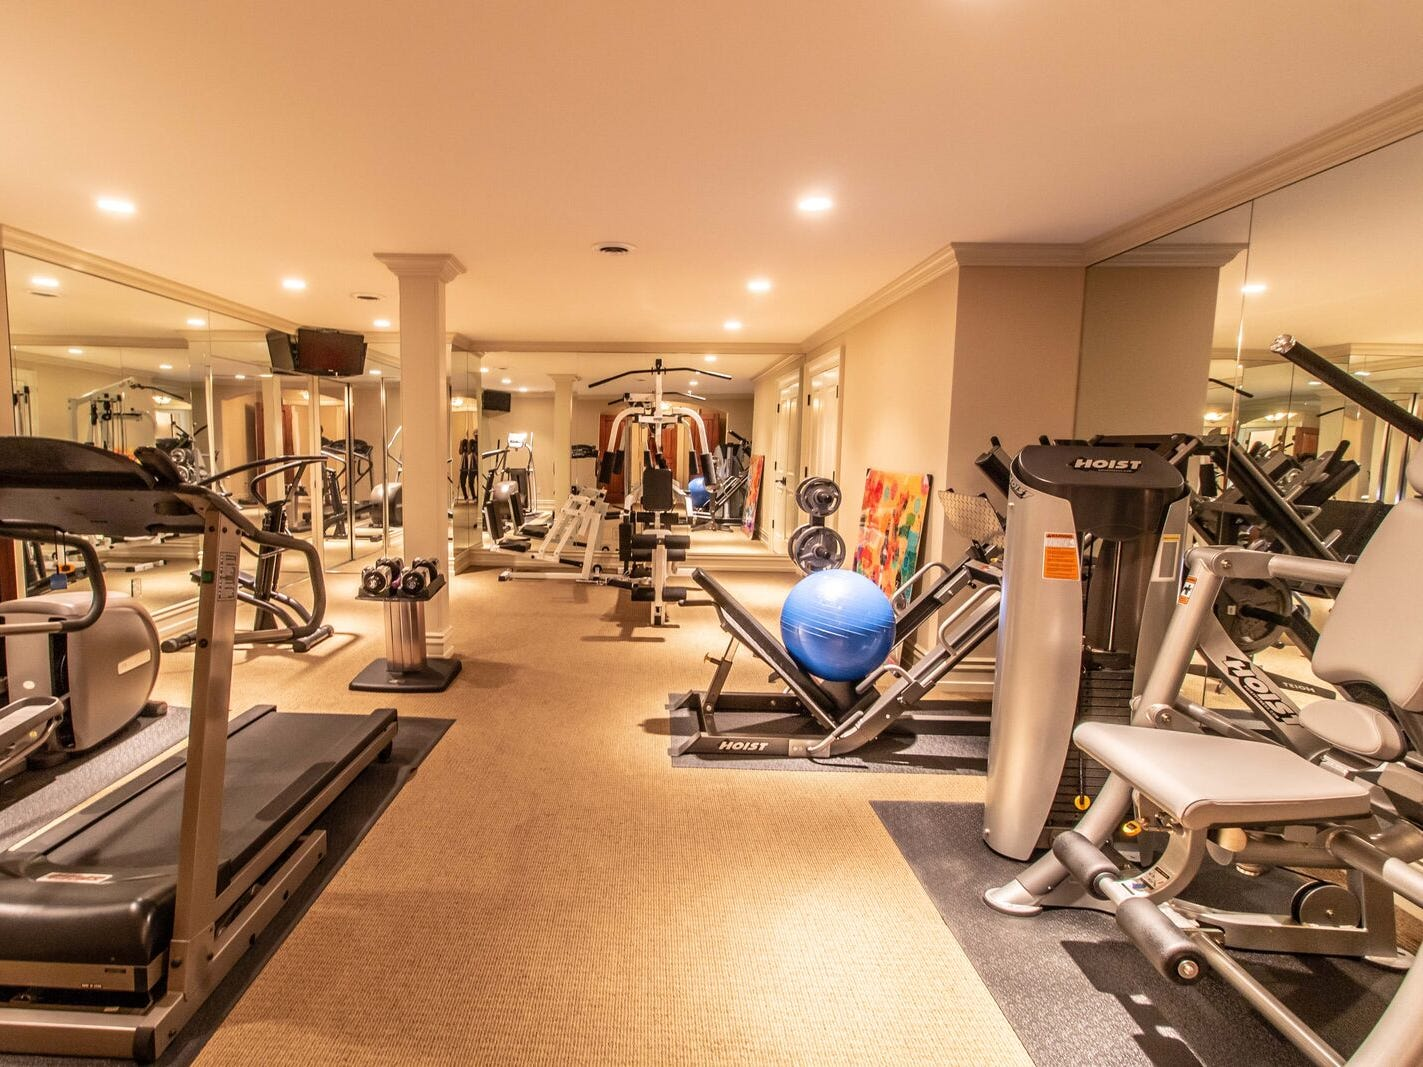 A gym without membership.